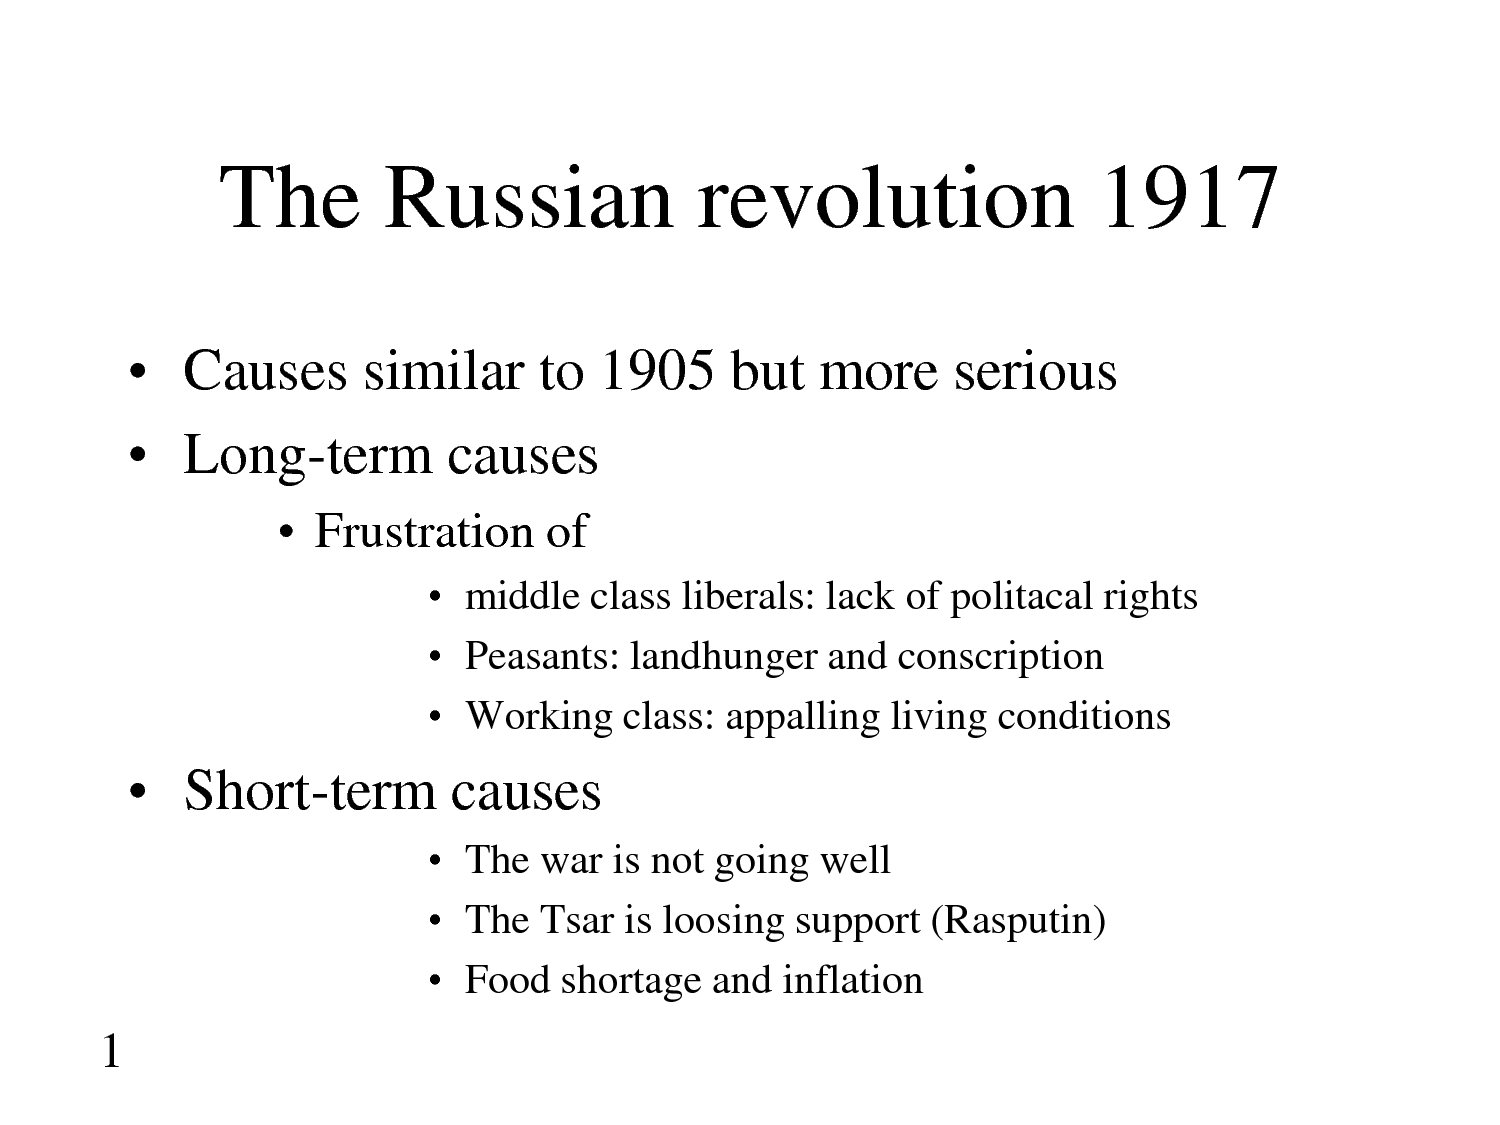 children of the russian revolution timeline yahoo image search children of the russian revolution timeline yahoo image search results